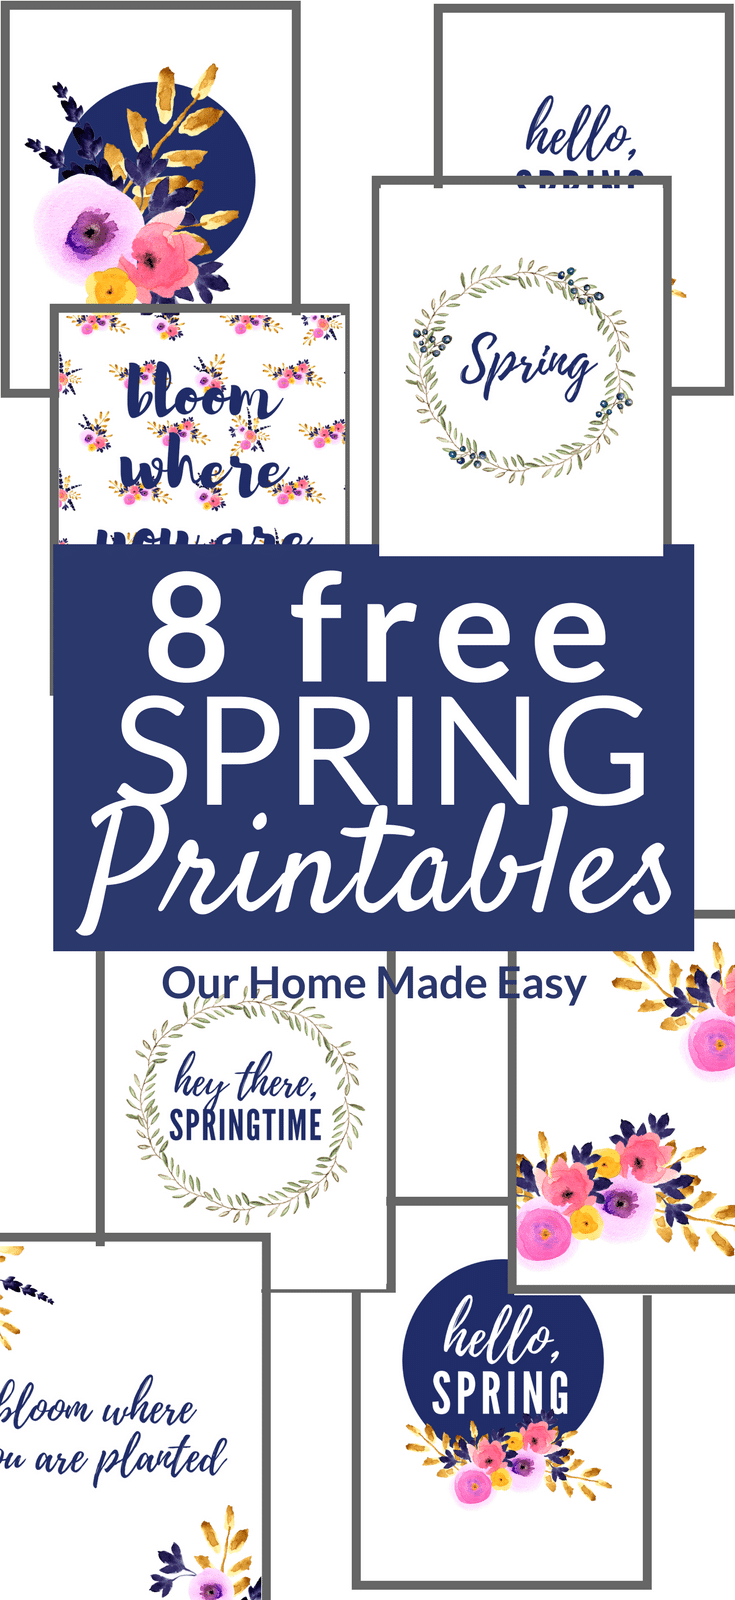 Download 8 free spring printables to decorate your home! They are all perfect for spring and are completely free. Click here to get those free prints!